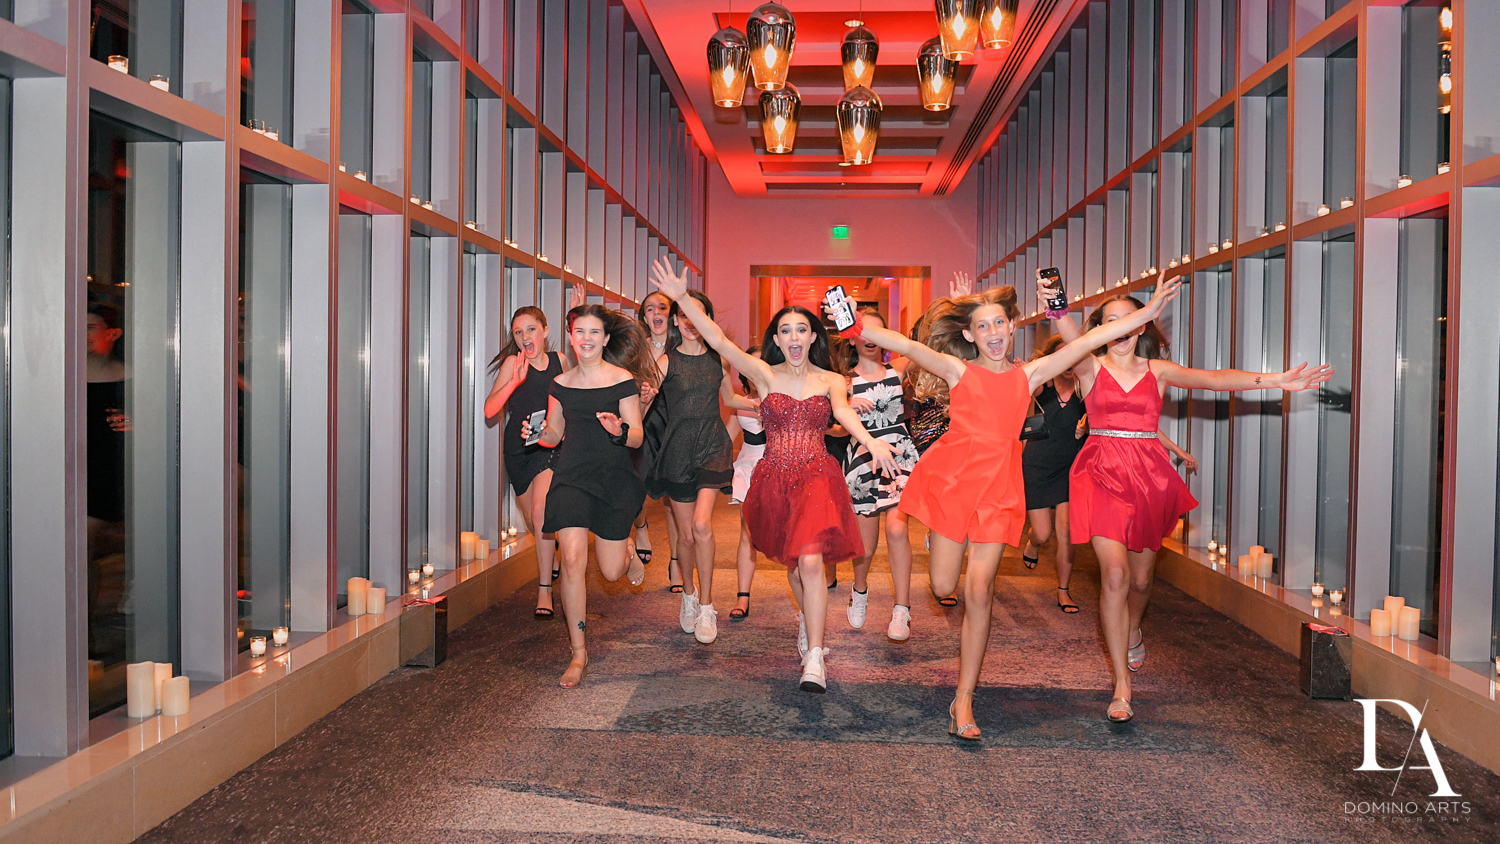 fun girls at Luxury Celebrity Bat Mitzvah at Four Seasons Hotel Miami by Domino Arts Photography